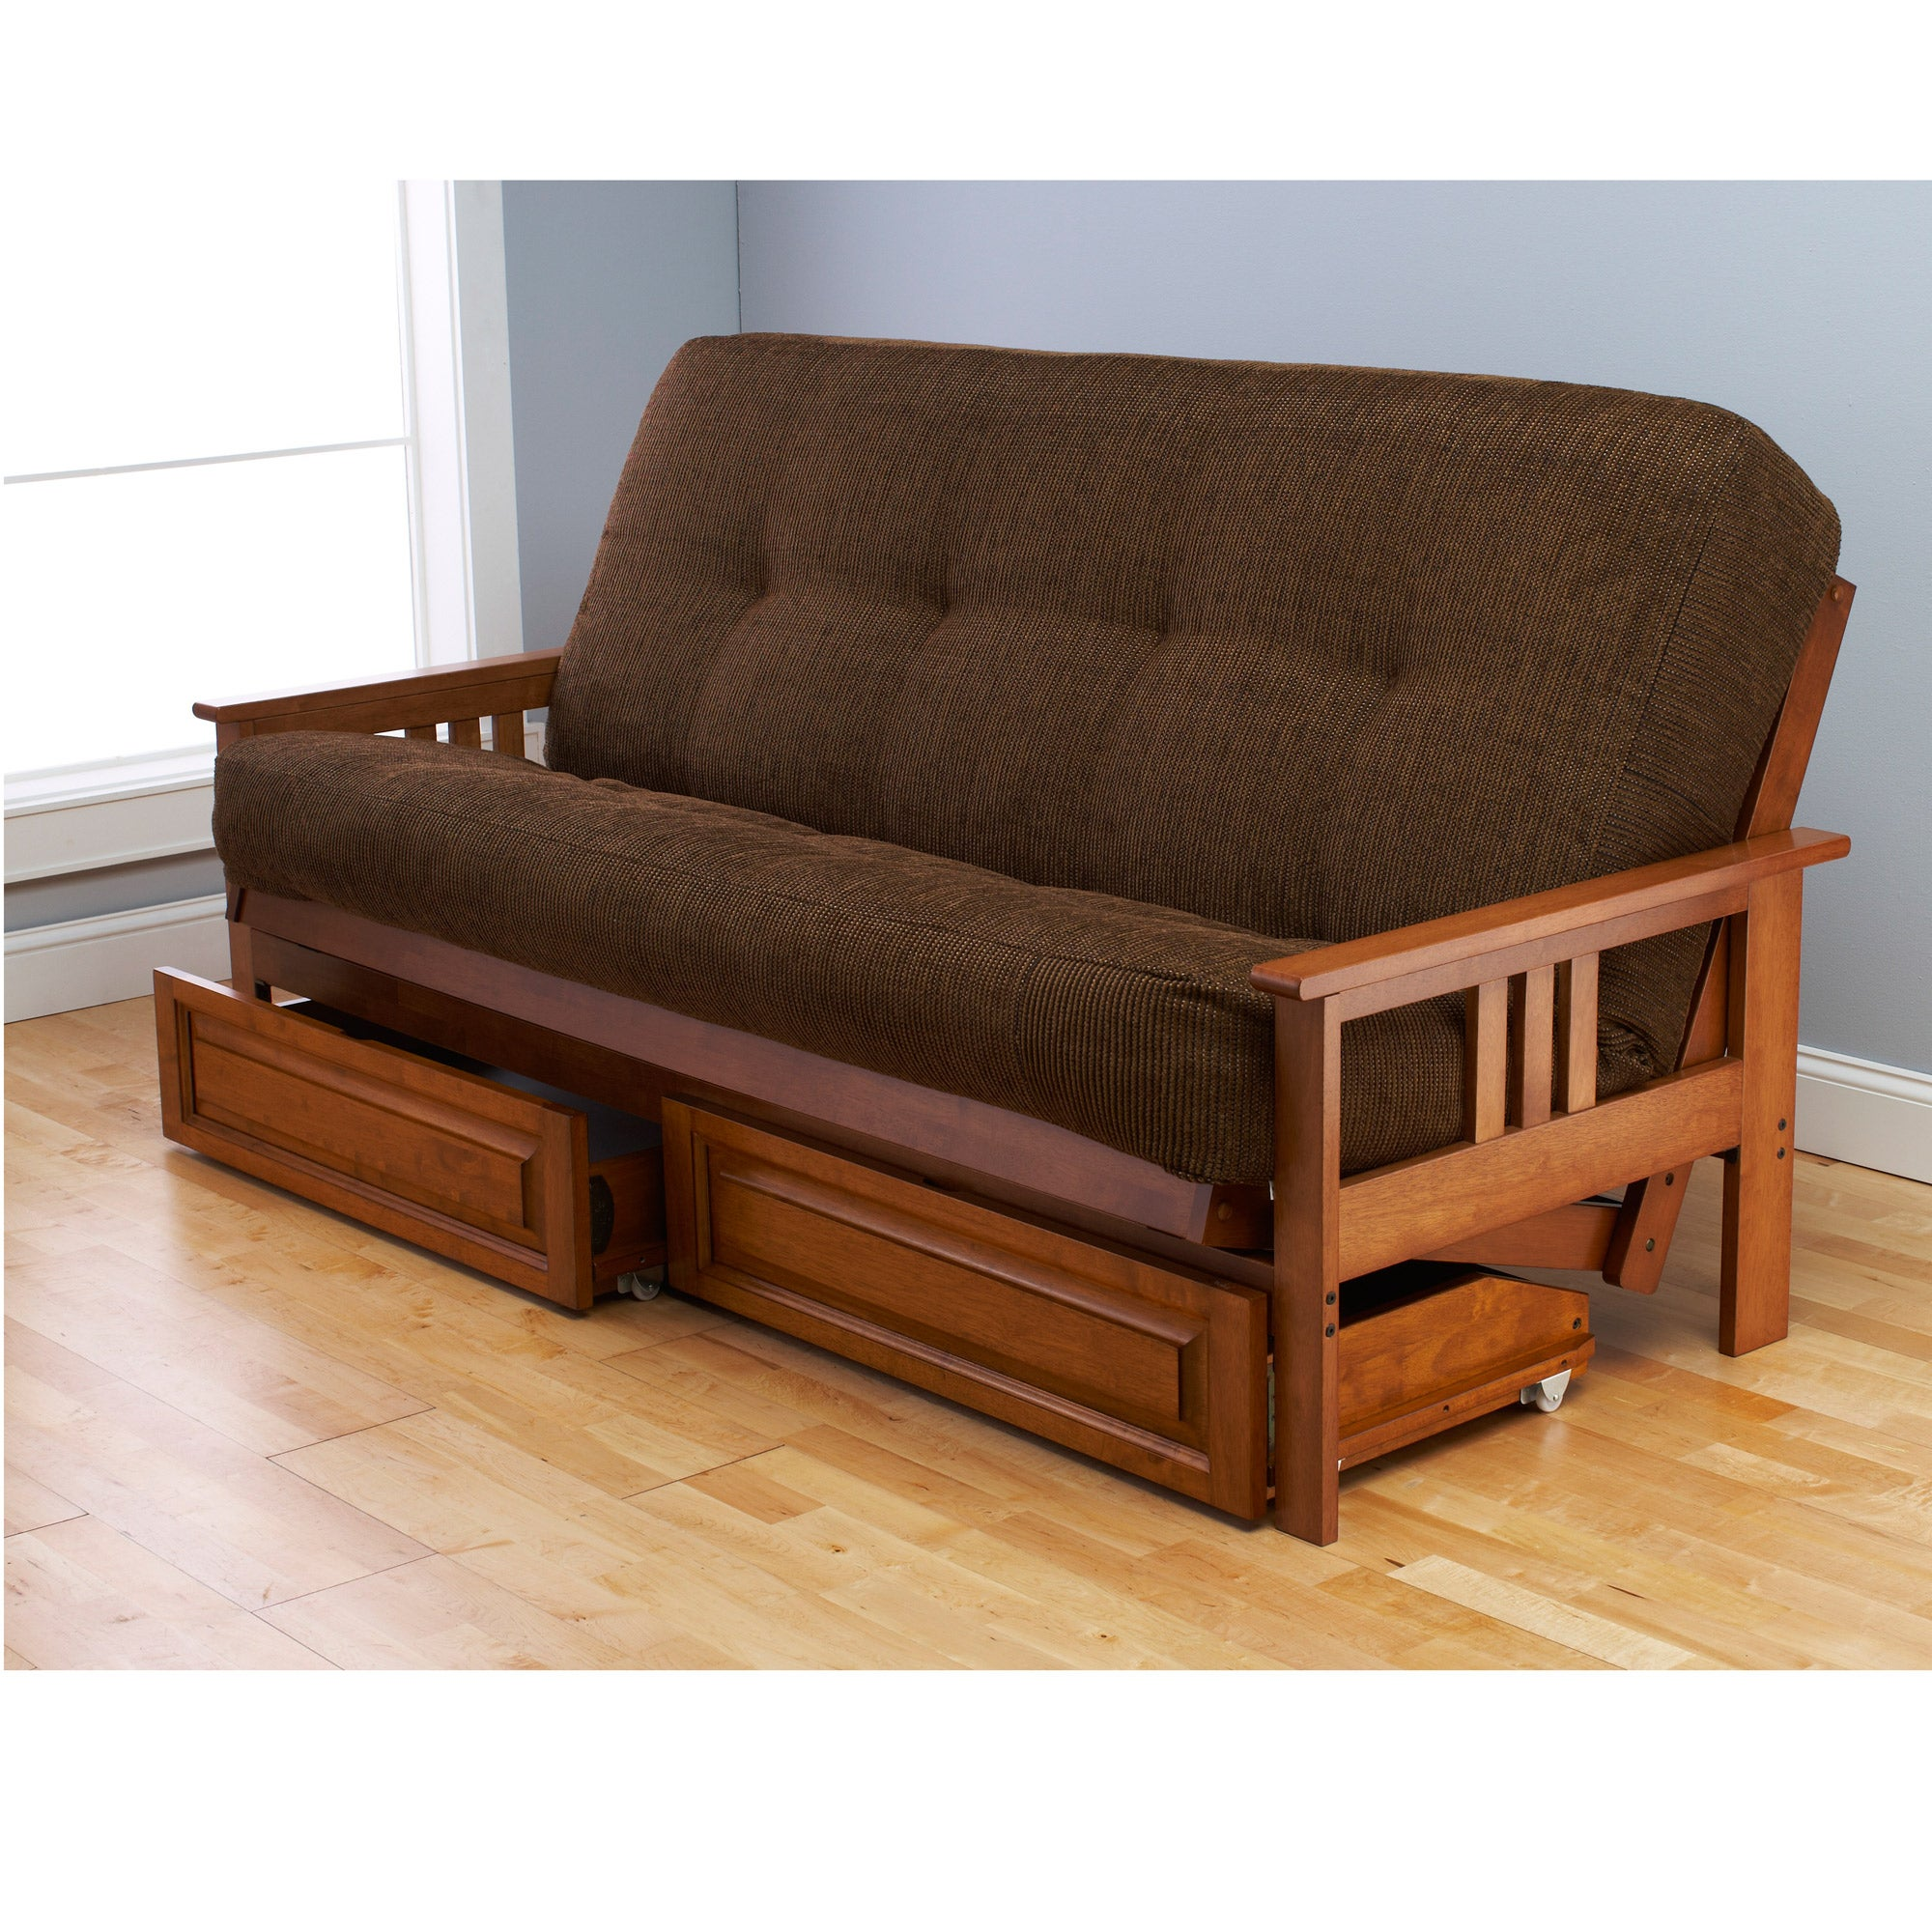 Somette Beli Mont Multi-flex Honey Oak Futon Frame, Drawers and Mattress Set